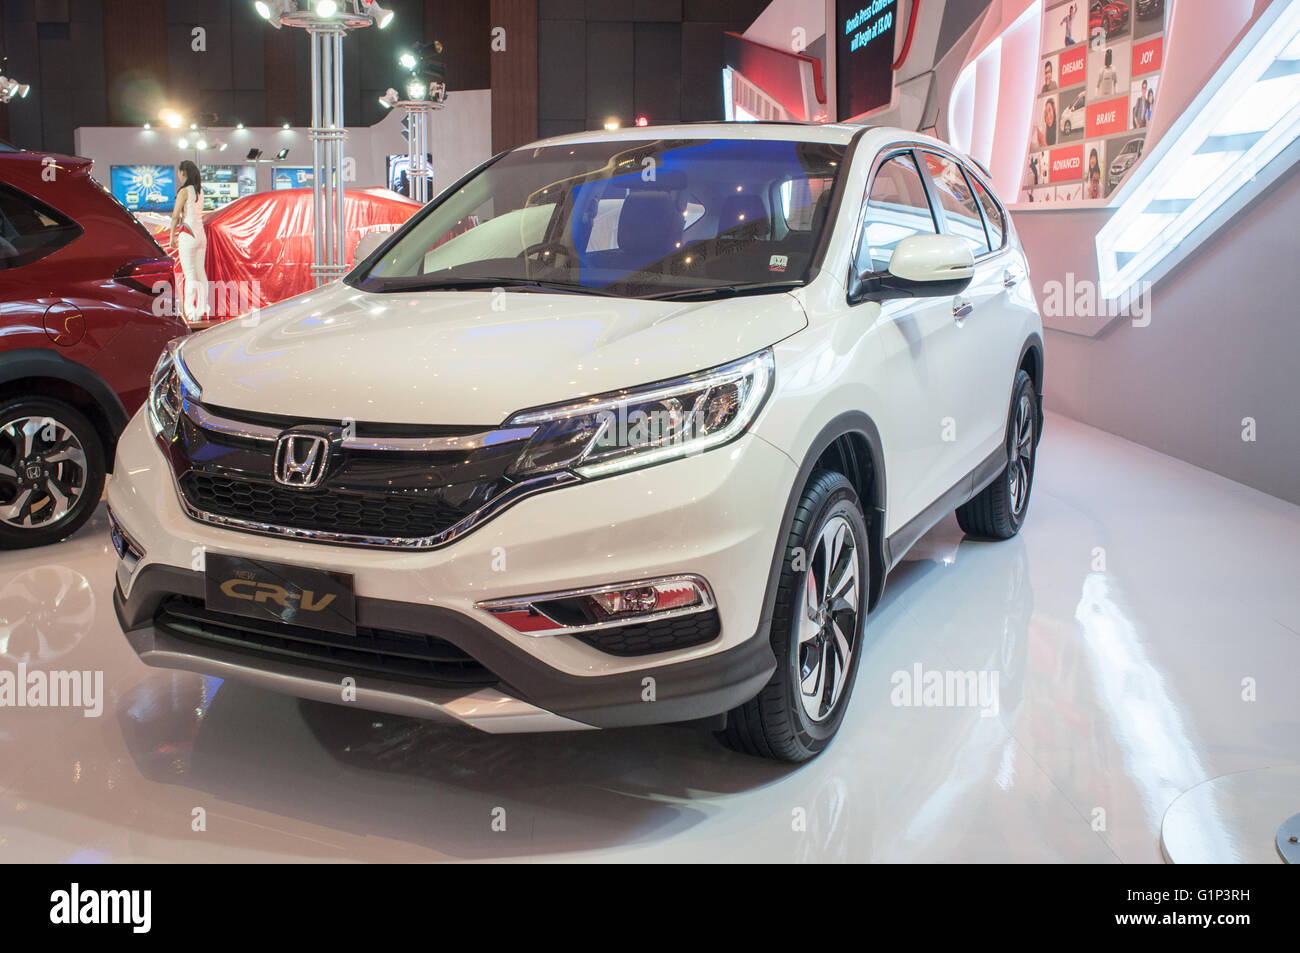 Makassar, Indonesia. 18th May, 2016. Honda exhibit New CR-V at GIIAS Makassar Autoshow in Makassar, Indonesia. Recent - Stock Image